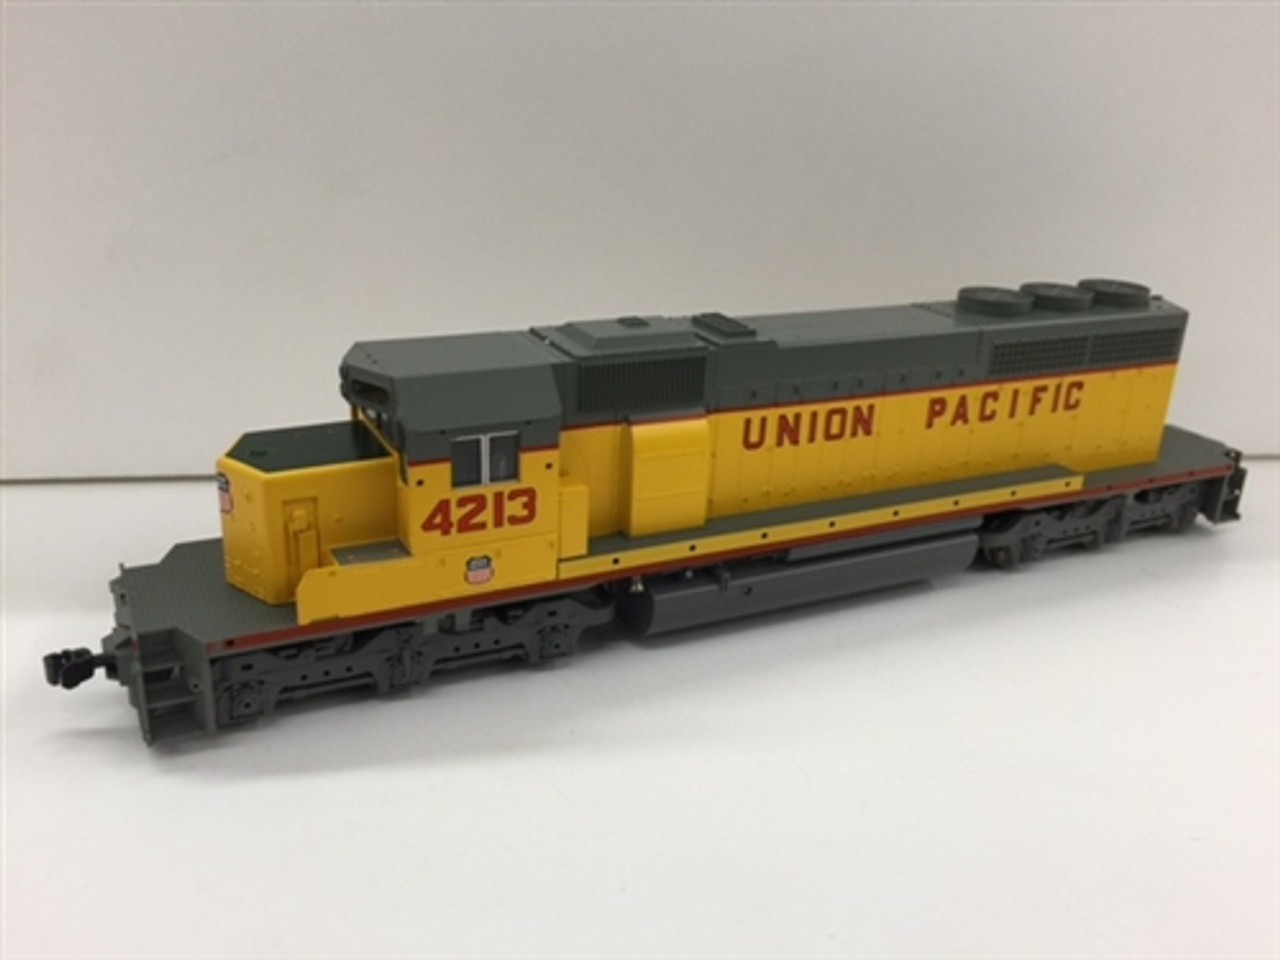 Kato HO Scale Ready to Run EMD SD40-2 Diesel Locomotive, (Knuckle Couplers)  Union Pacific #4213